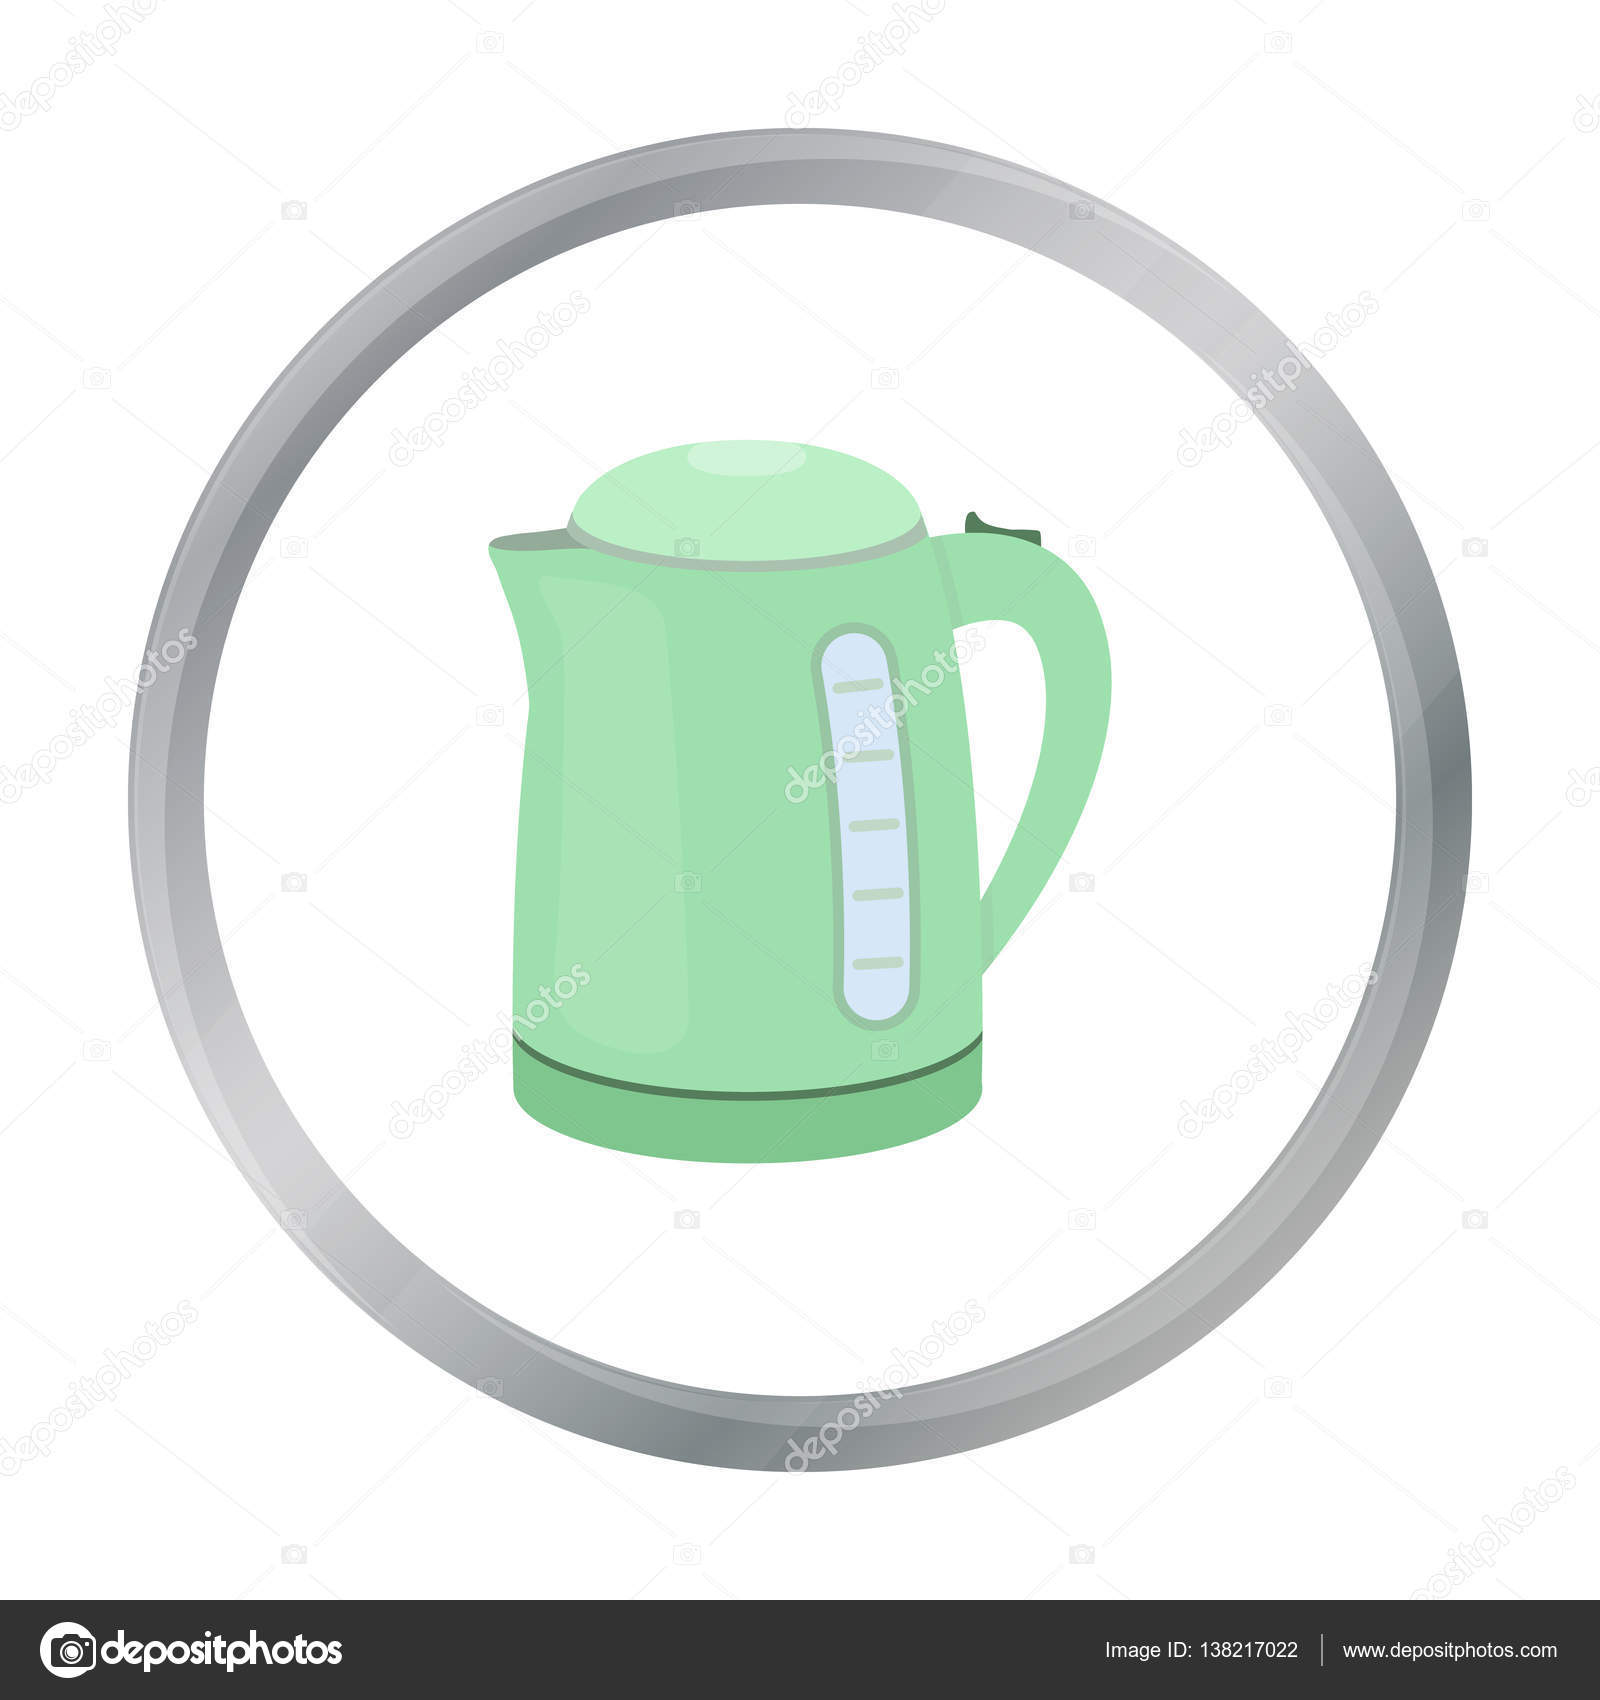 Electrical kettle icon in cartoon style isolated on white ... on basic electronic symbols, kitchen symbols, lighting symbols, residential electric symbols, residential drafting symbols, circuit symbols, heating and cooling symbols, carpentry symbols, electronic component symbols, household appliances, printable wiring diagram symbols, industrial wiring symbols, voice and data symbols, clothing symbols, tools symbols, bathroom symbols, residential wiring symbols, automotive symbols, wallpaper symbols, electronic schematic symbols,